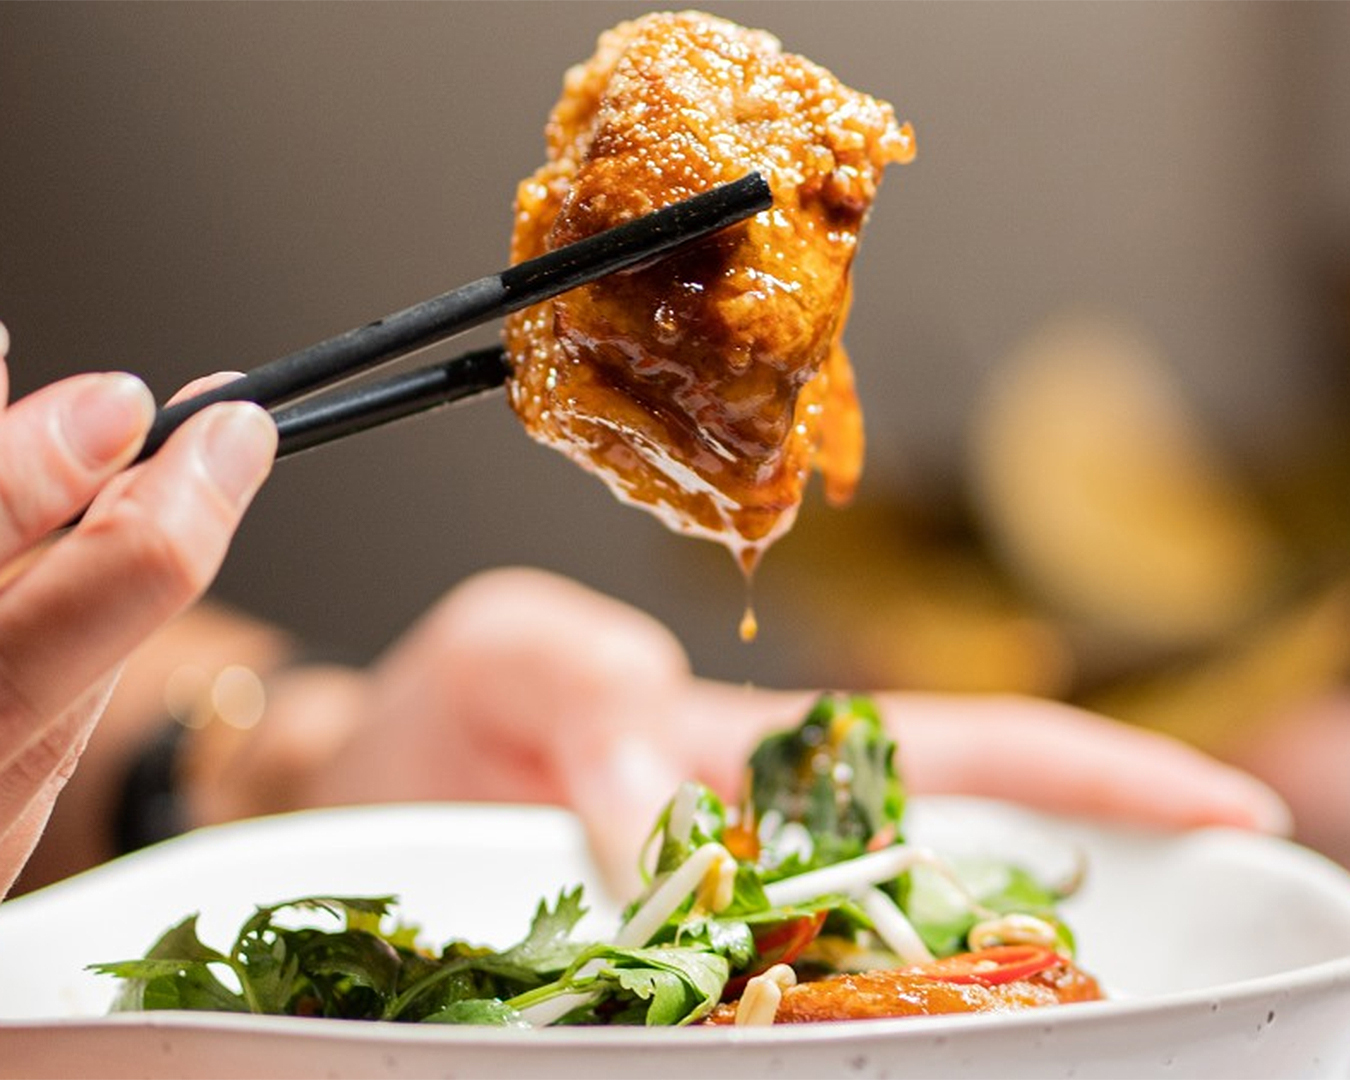 Caramelised pork belly? Paired with fragrant herb salad and crackling dumplings.